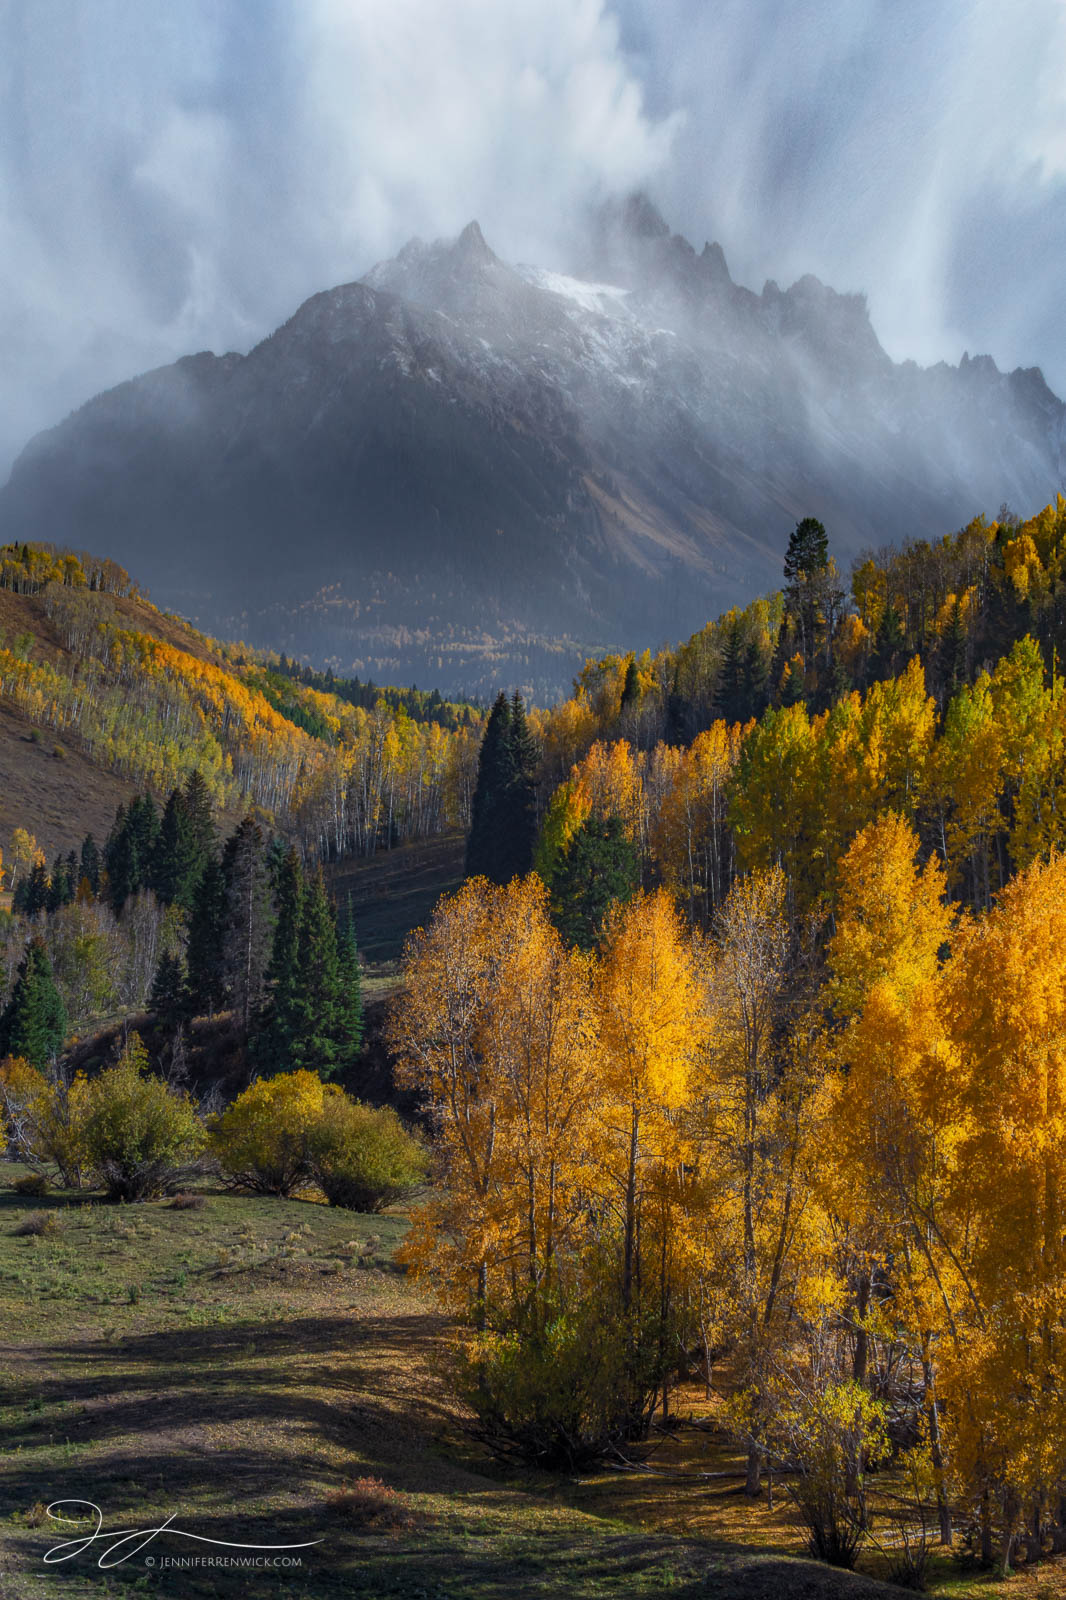 Mt. Sneffels rises above a grove of aspen trees while an autumn storm clears.